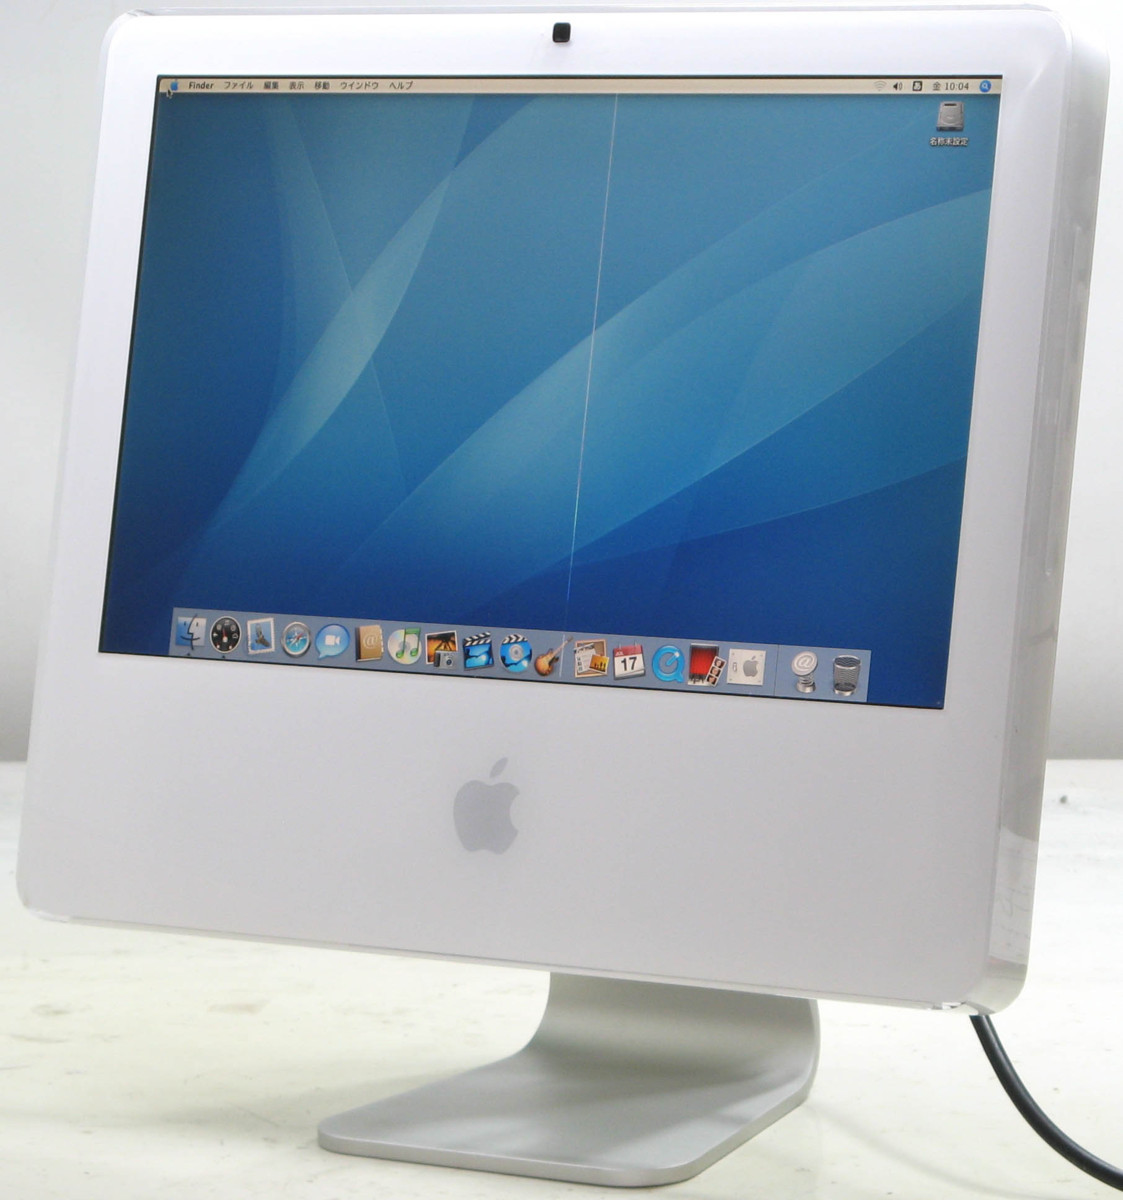 Osx 10.6 E Windows 10 Pro Licensed Computers/tablets & Networking Imac 2008-24 Pollici